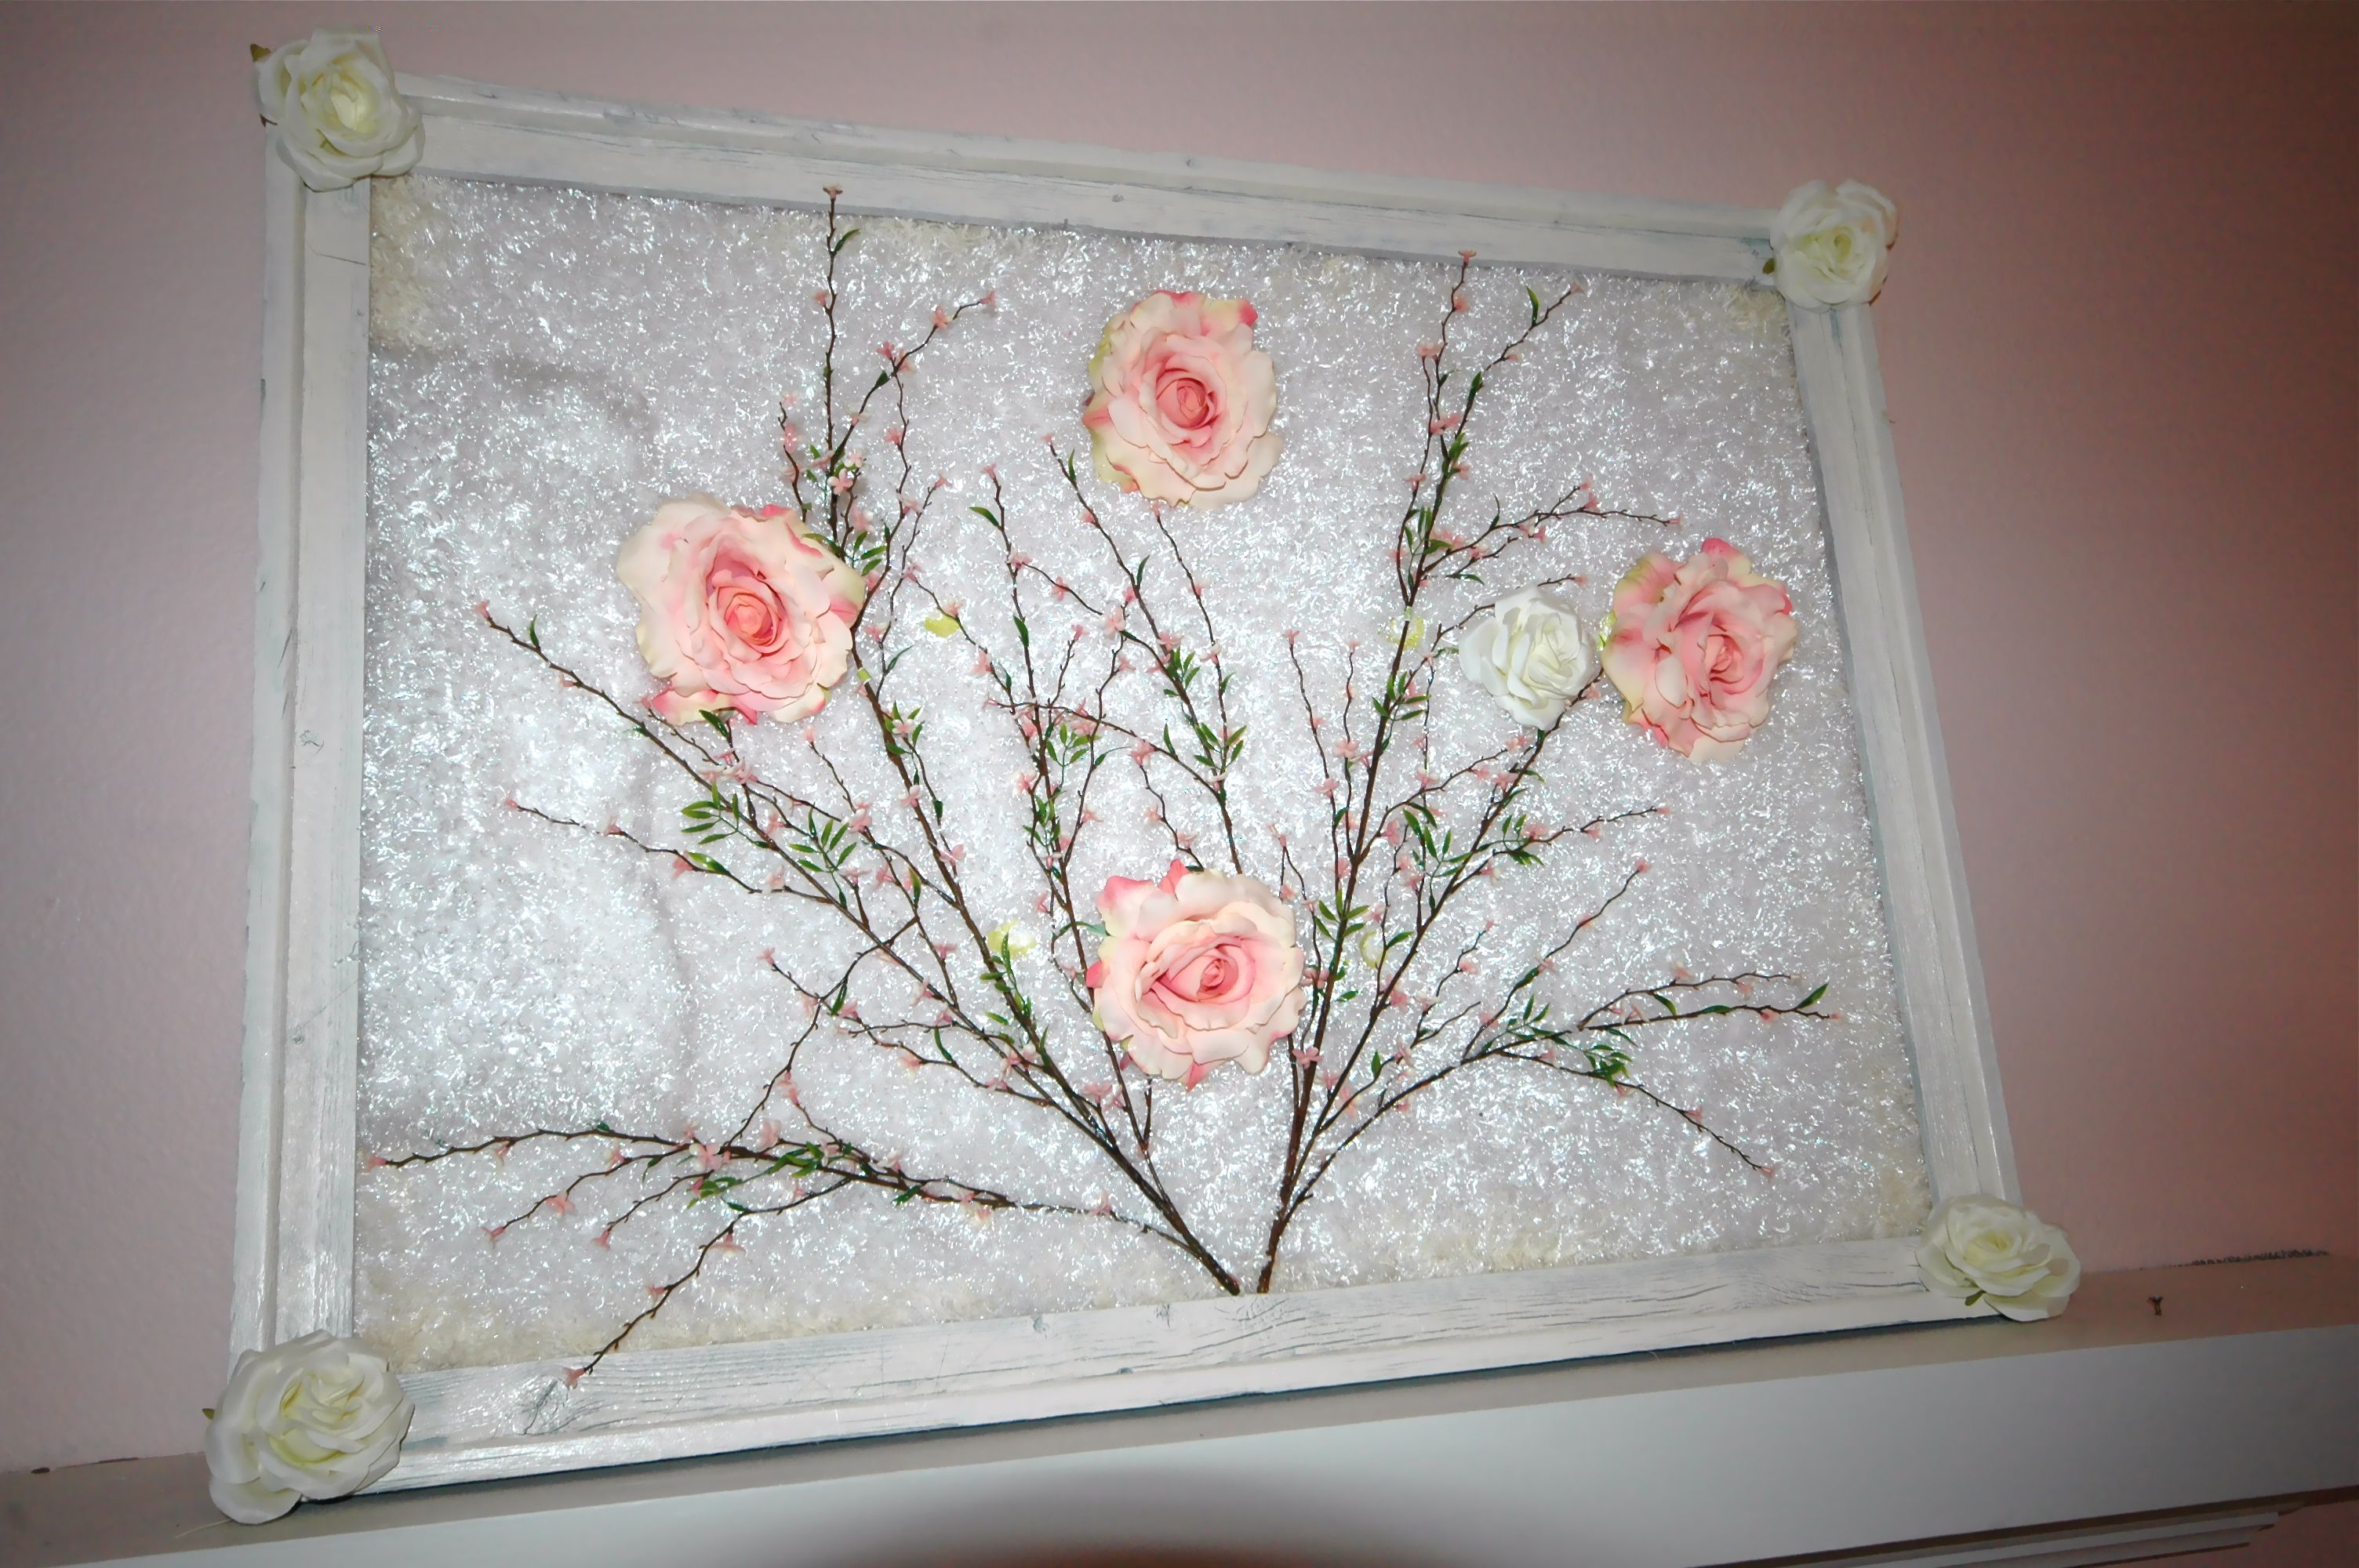 Shabby chic wall art took me minutes to do everything from